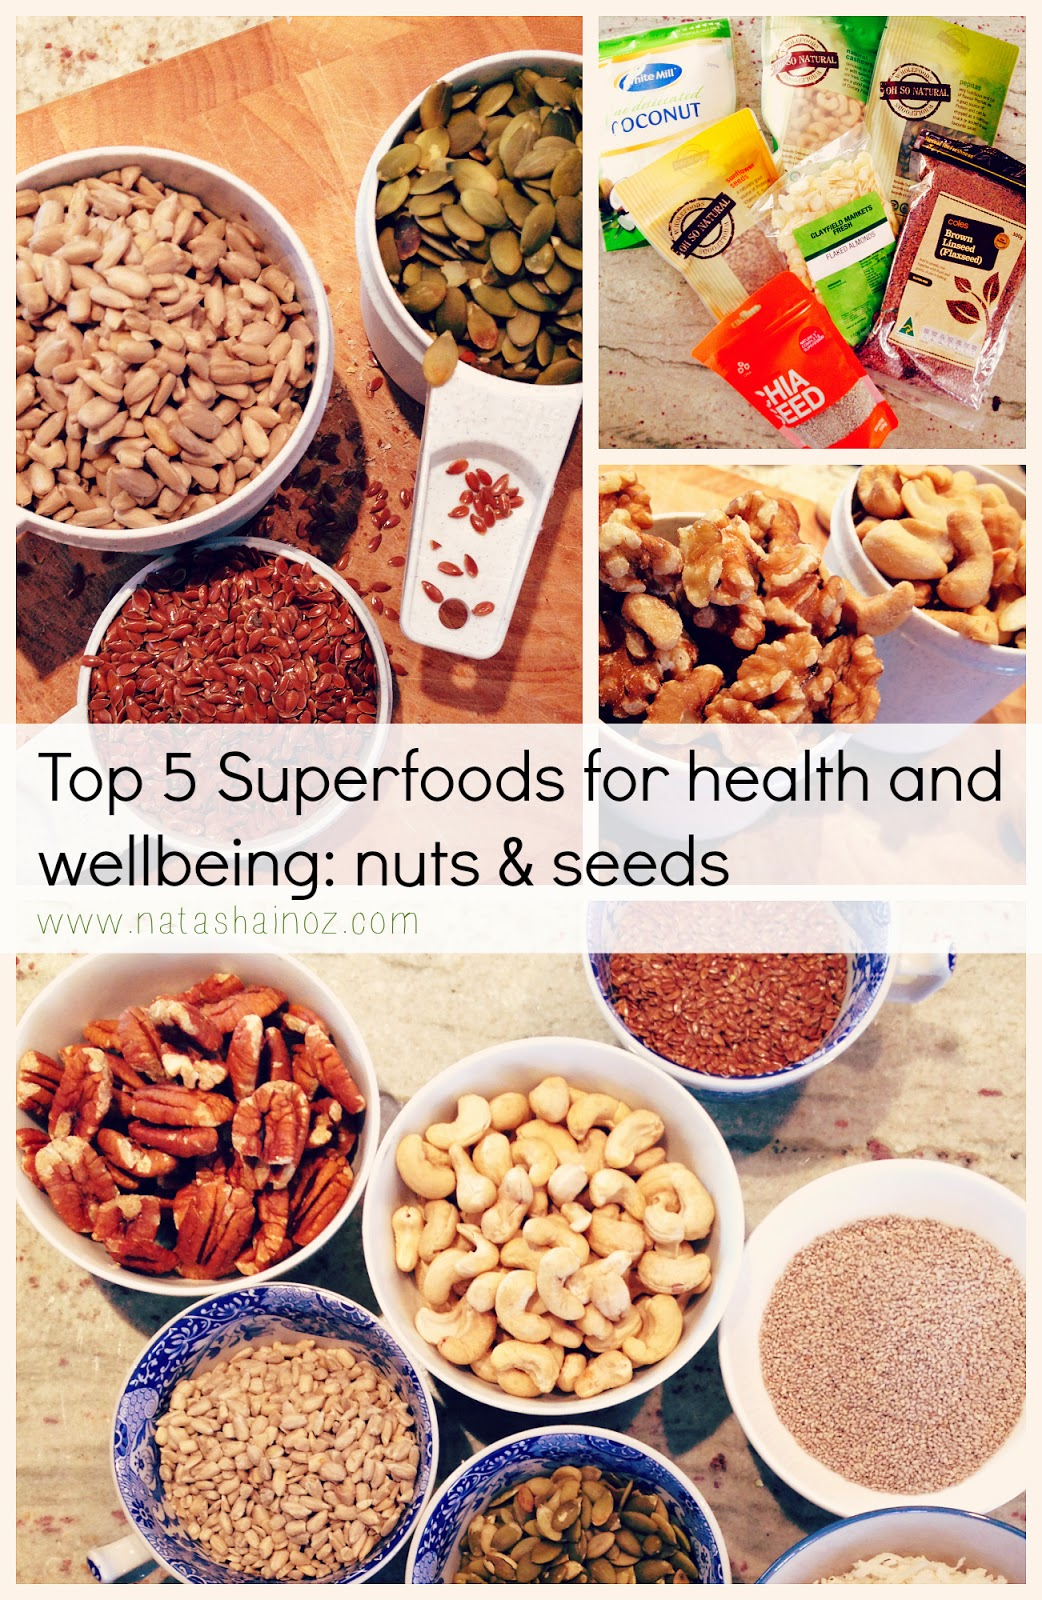 Top 5 Superfoods For Health and Wellbeing, Natasha in Oz, nuts, seeds